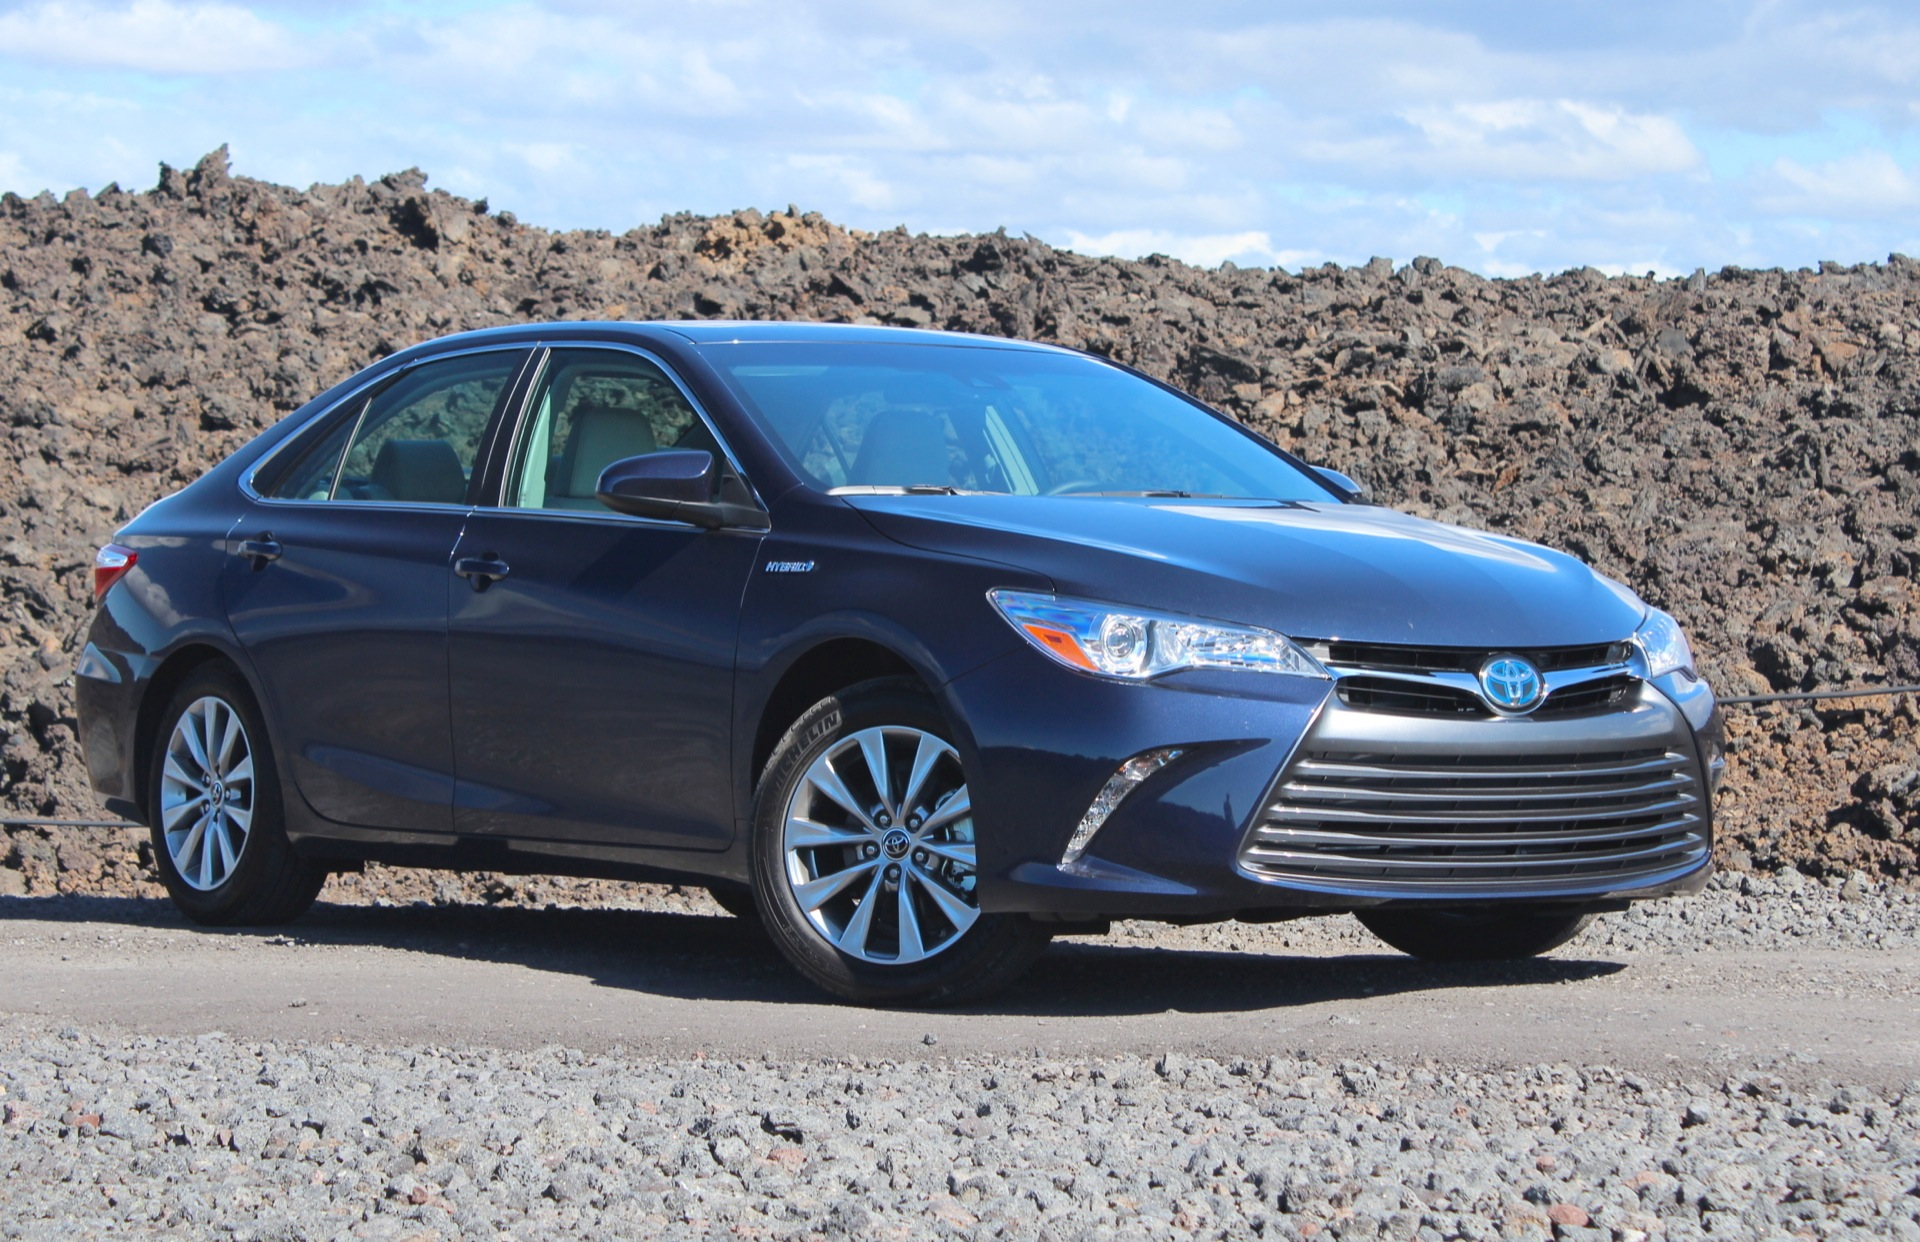 2015 Toyota Camry Review, Ratings, Specs, Prices, and Photos - The Car Connection